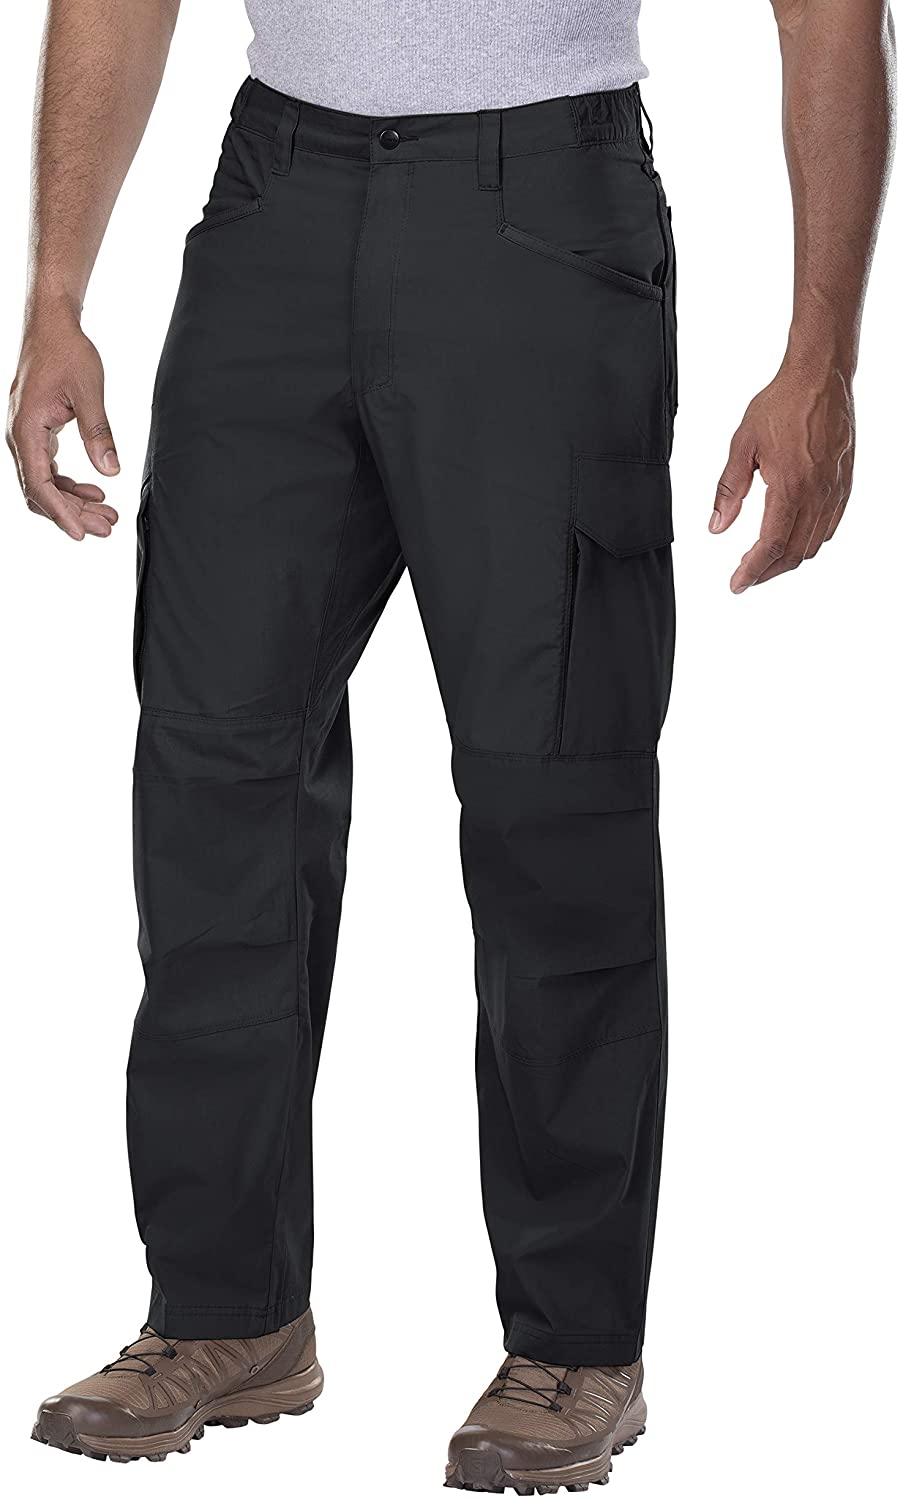 Vertx Men's Fusion Lt Tacical sold out Limited time trial price Pants Stretch